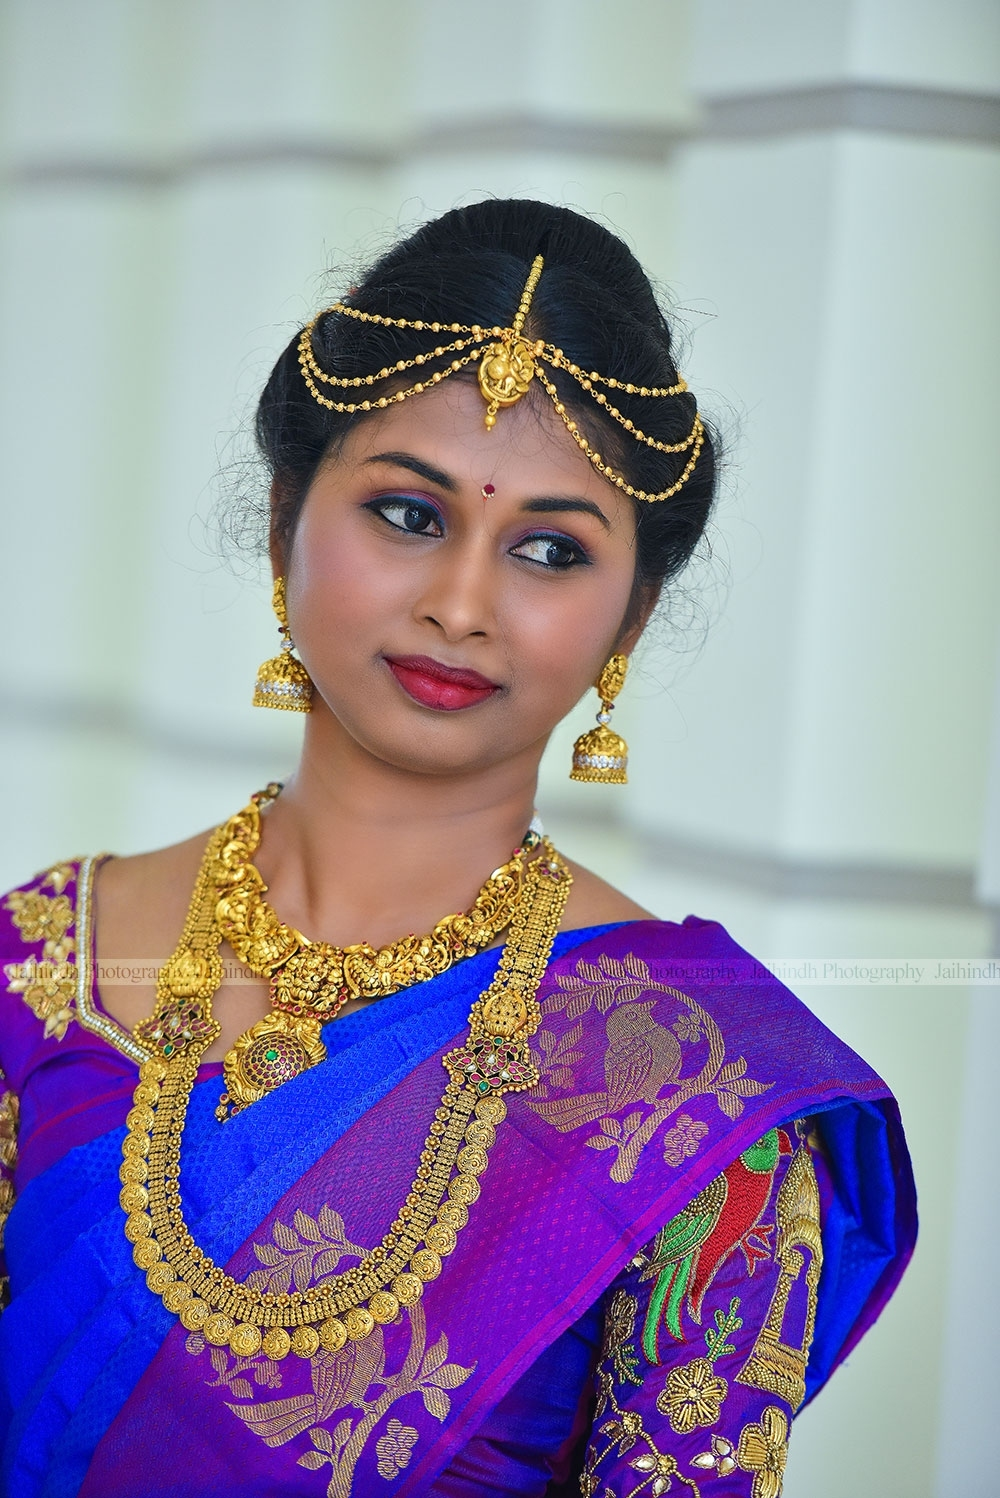 Bridal Makeup Madurai, Bridal Makeup In Madurai - Tamil Nadu for Bridal Makeup Photos Tamilnadu